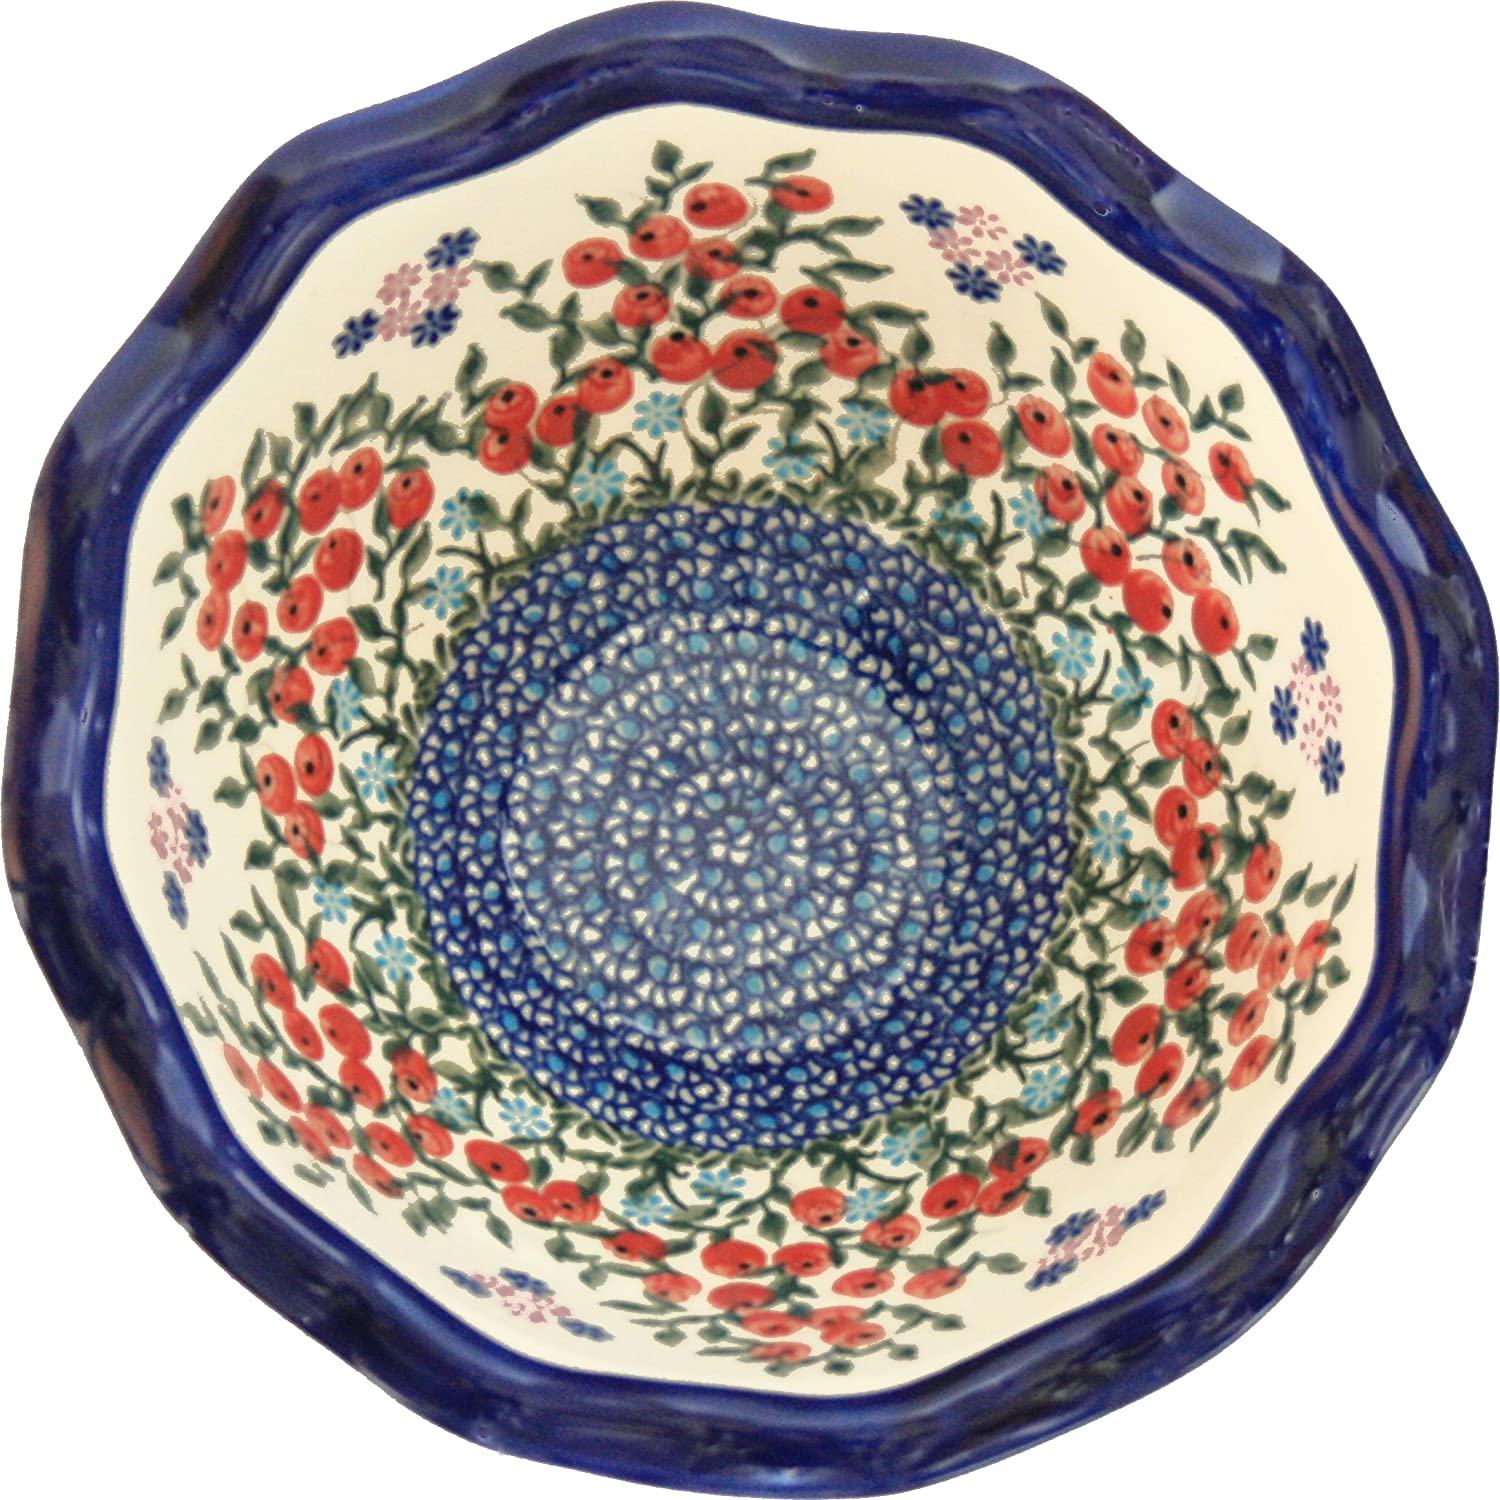 Polish Pottery Ceramika Boleslawiec 0413/282 Royal Blue Patterns 5-3/4-Cup Fala Bowl, Small, Red Berries and Daisies Lidia's Polish Pottery Inc. 0413-282